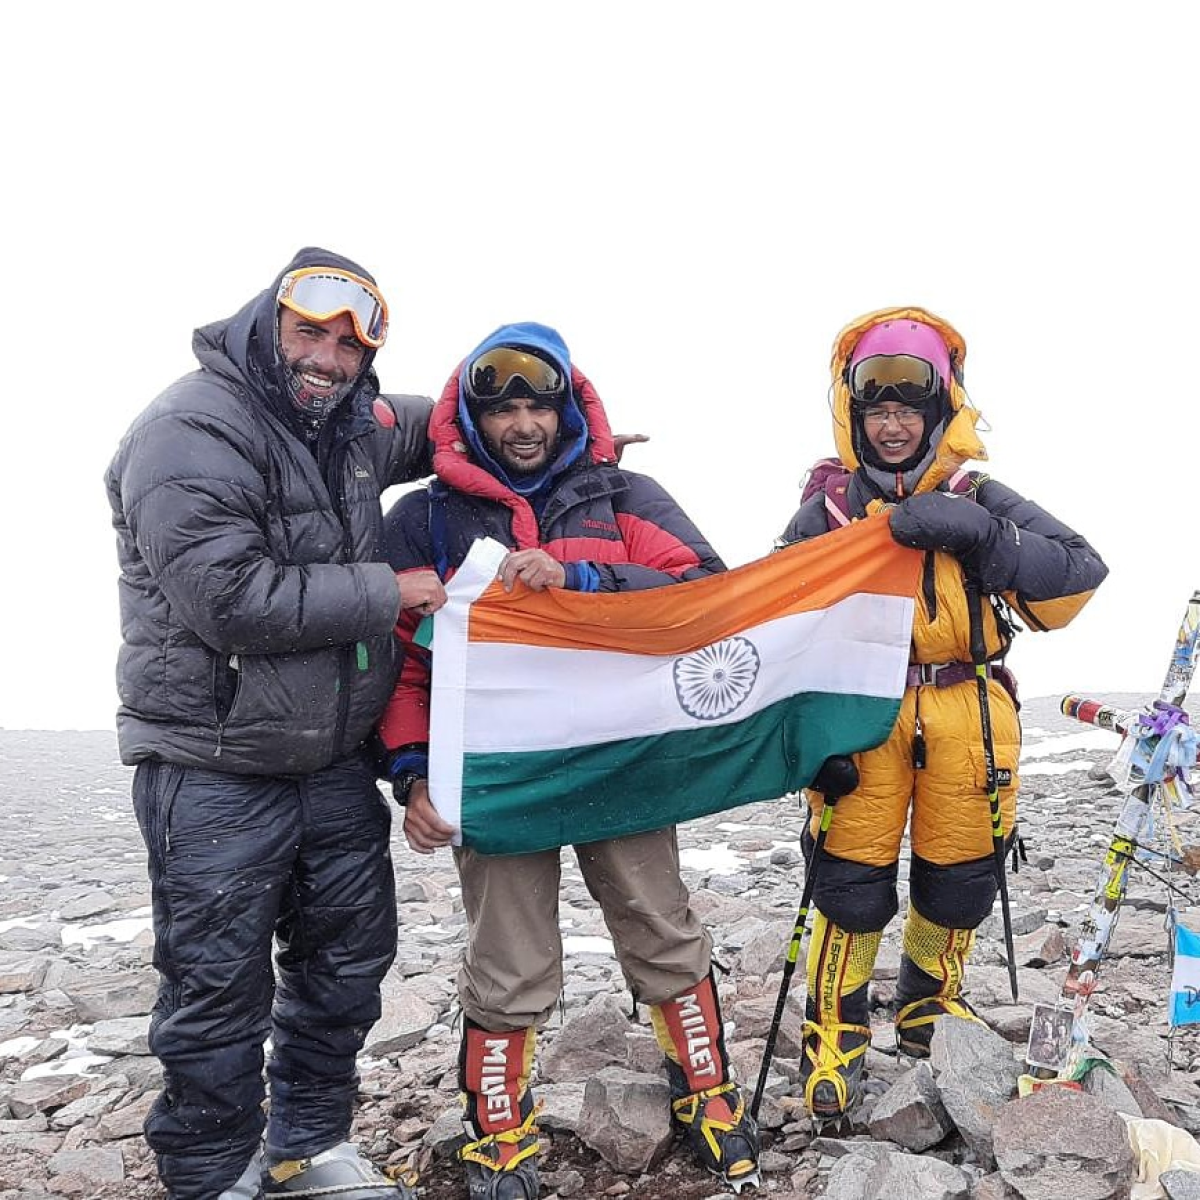 12-year-old Mumbai girl becomes youngest to scale Mt. Aconcagua